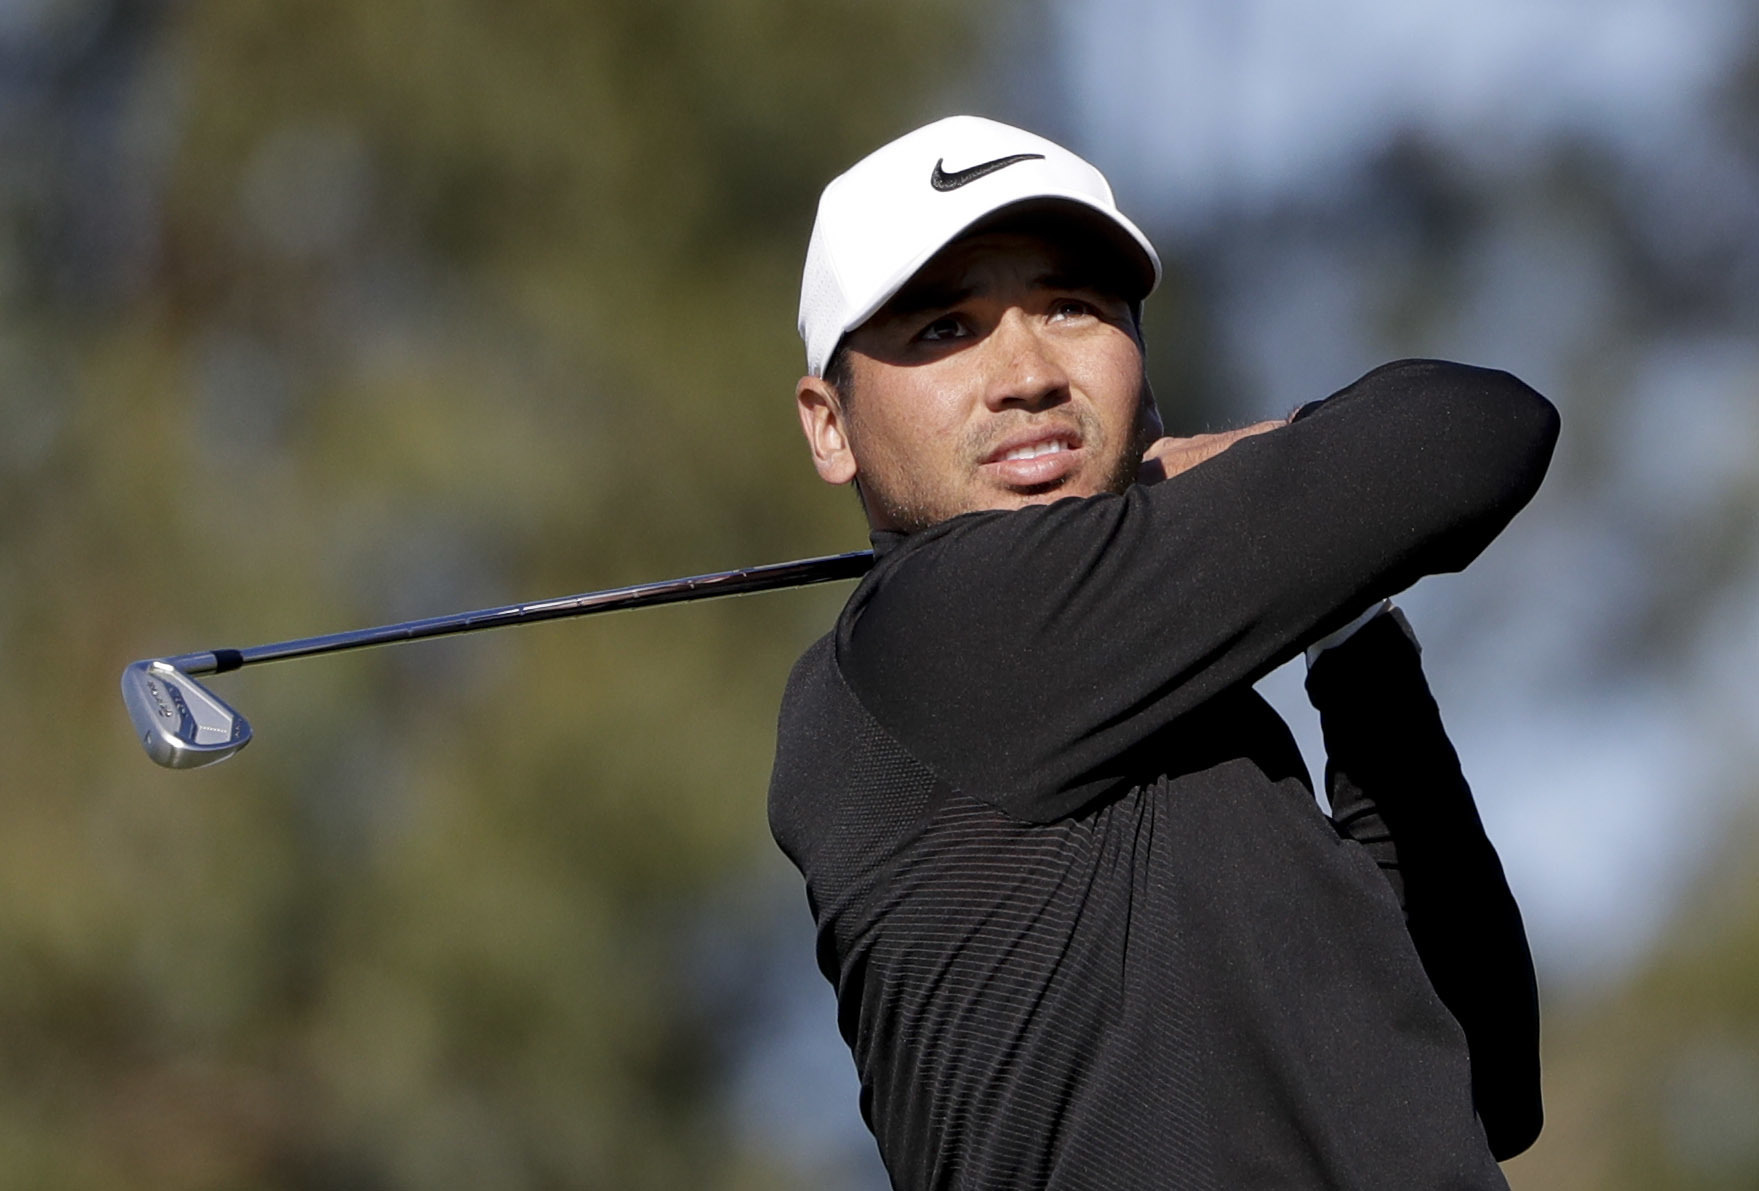 Jason Day, of Australia, watches his tee shot on the eighth hole of the North Course during the second round of the Farmers Insurance Open golf tournament Friday, Jan. 27, 2017, at Torrey Pines Golf Course in San Diego. (AP Photo/Gregory Bull)